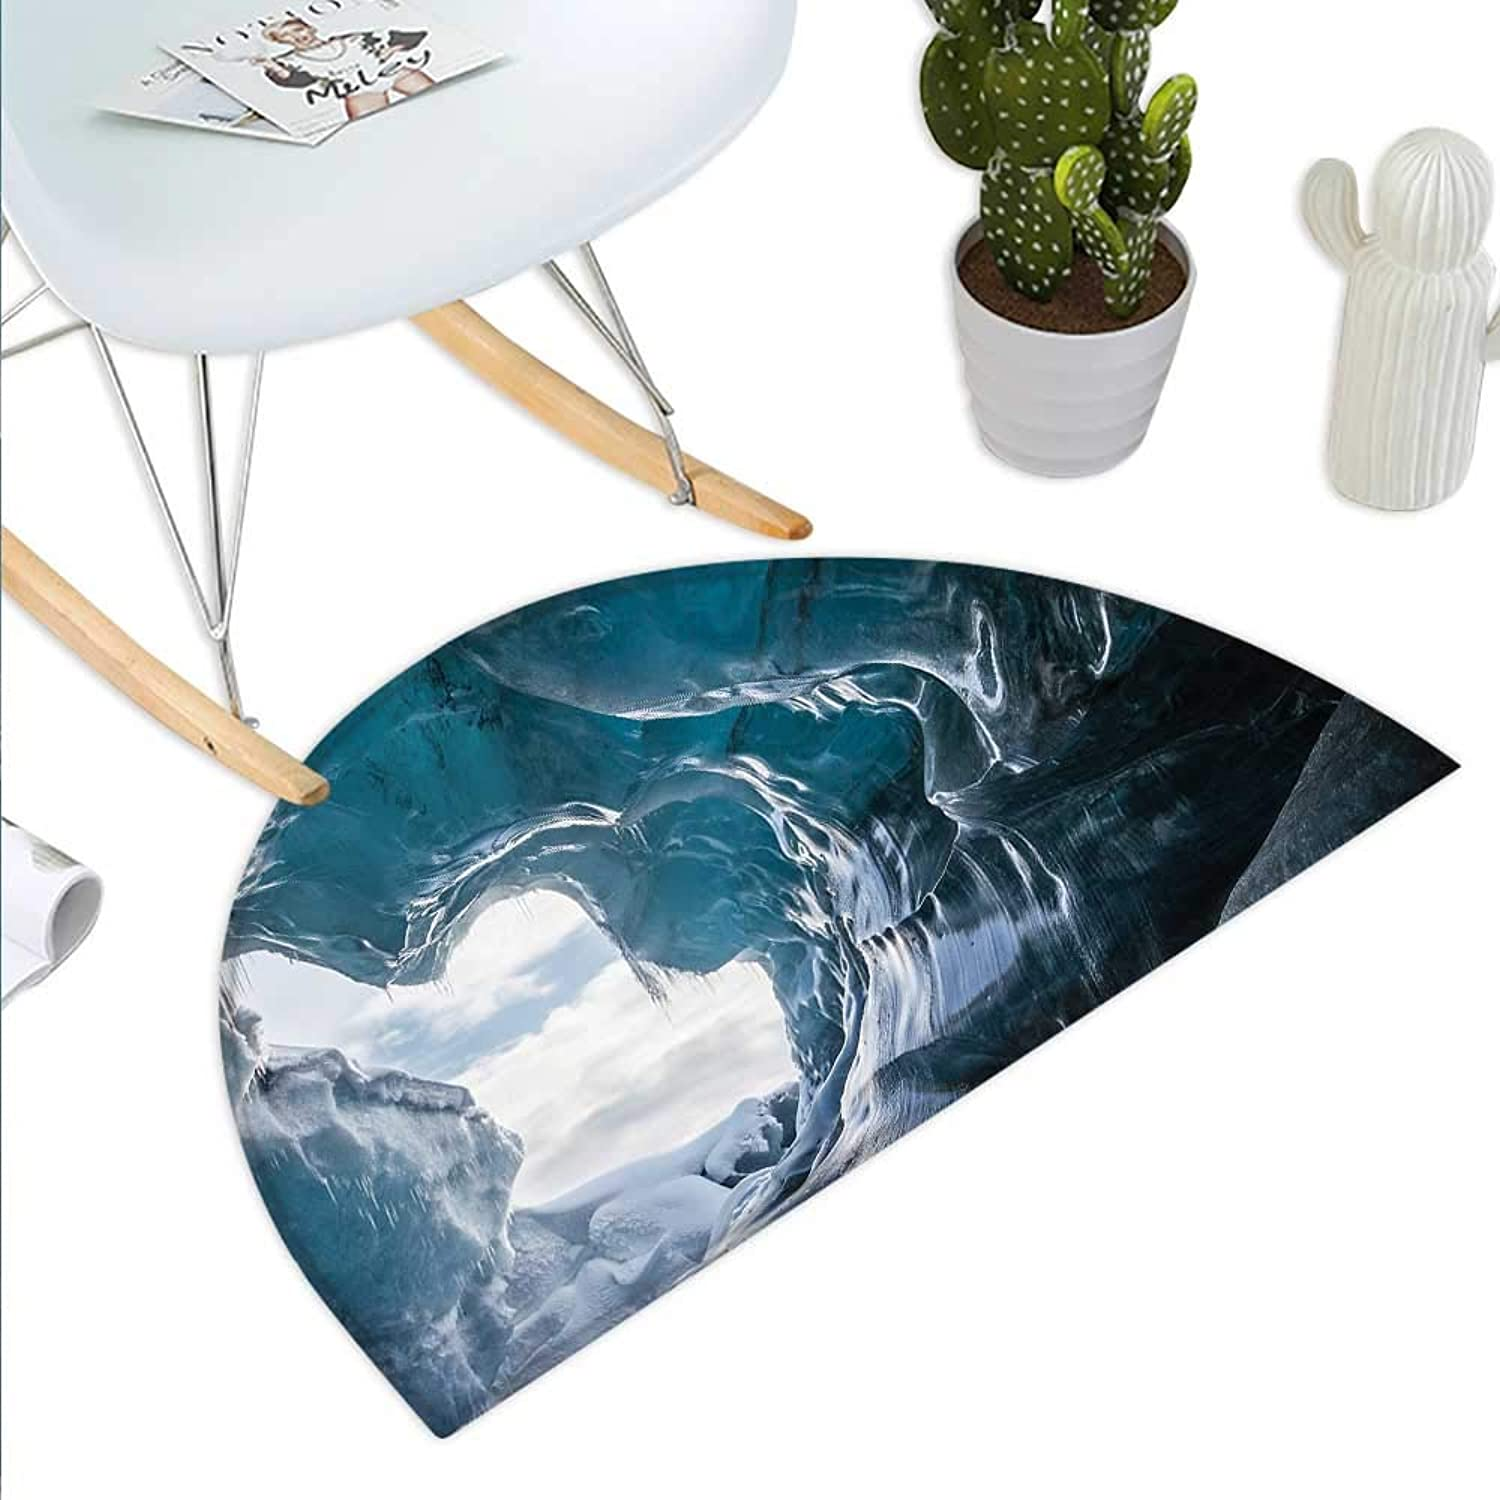 Cave Semicircle Doormat Inside of The Famous Vatnajokull Glacier in Iceland with Icicles Halfmoon doormats H 43.3  xD 64.9  Charcoal Grey Pale bluee White